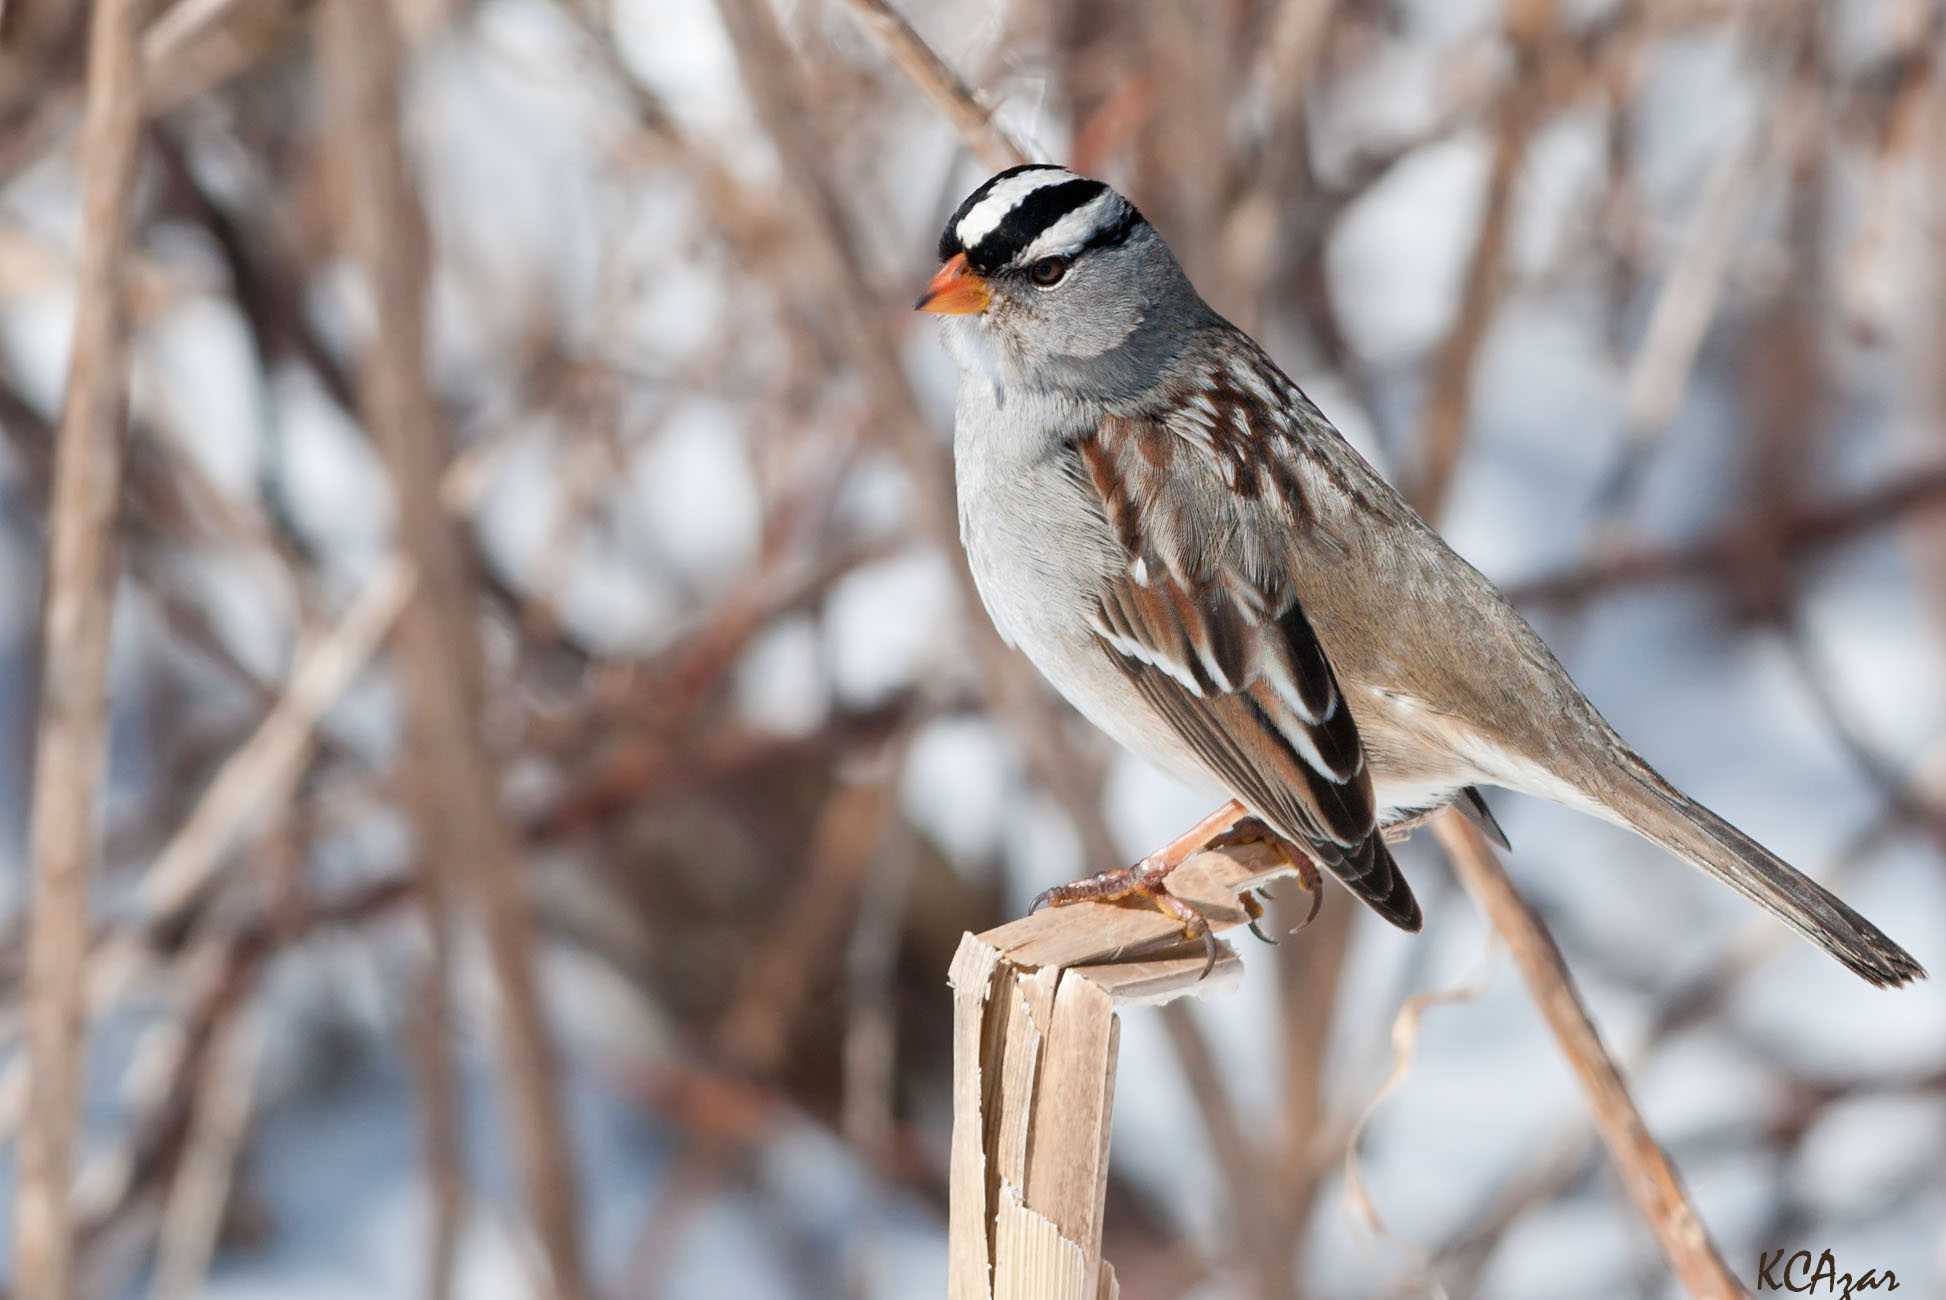 - White-crowned Sparrow (Zonotrichia leucophrys)White-crowned Sparrows live in brushy areas such as chaparral, forest edges, and scrub. Their diet consists of insects, seeds and berries. They weigh 0.9-1 oz. and have a wingspan of 8.3-9.4 in. White-crowned Sparrows sing a series of whistles that end with buzzes or trills. They are protected on the US Migratory Bird list.Photo Credits: Kelly Colgan Azar